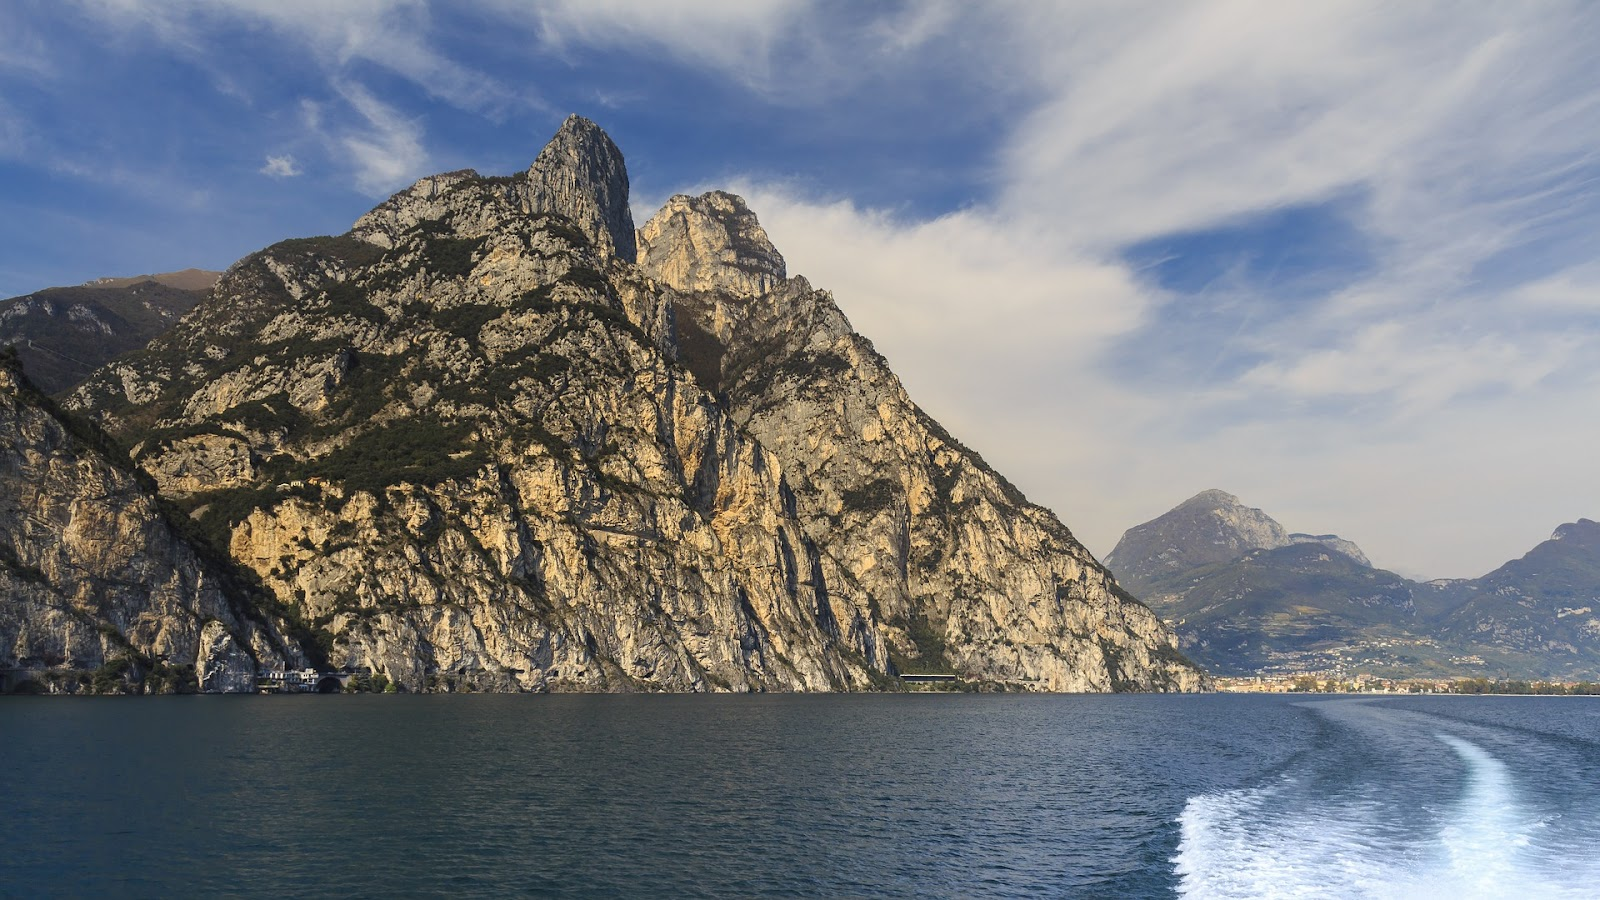 beautiful natural beauty near garda lake. Limone Sul Garda, small town in northern part of lago di garda. Large rocky hill seen from the lake's surface, trail from boat on the lake and clouds in distance.